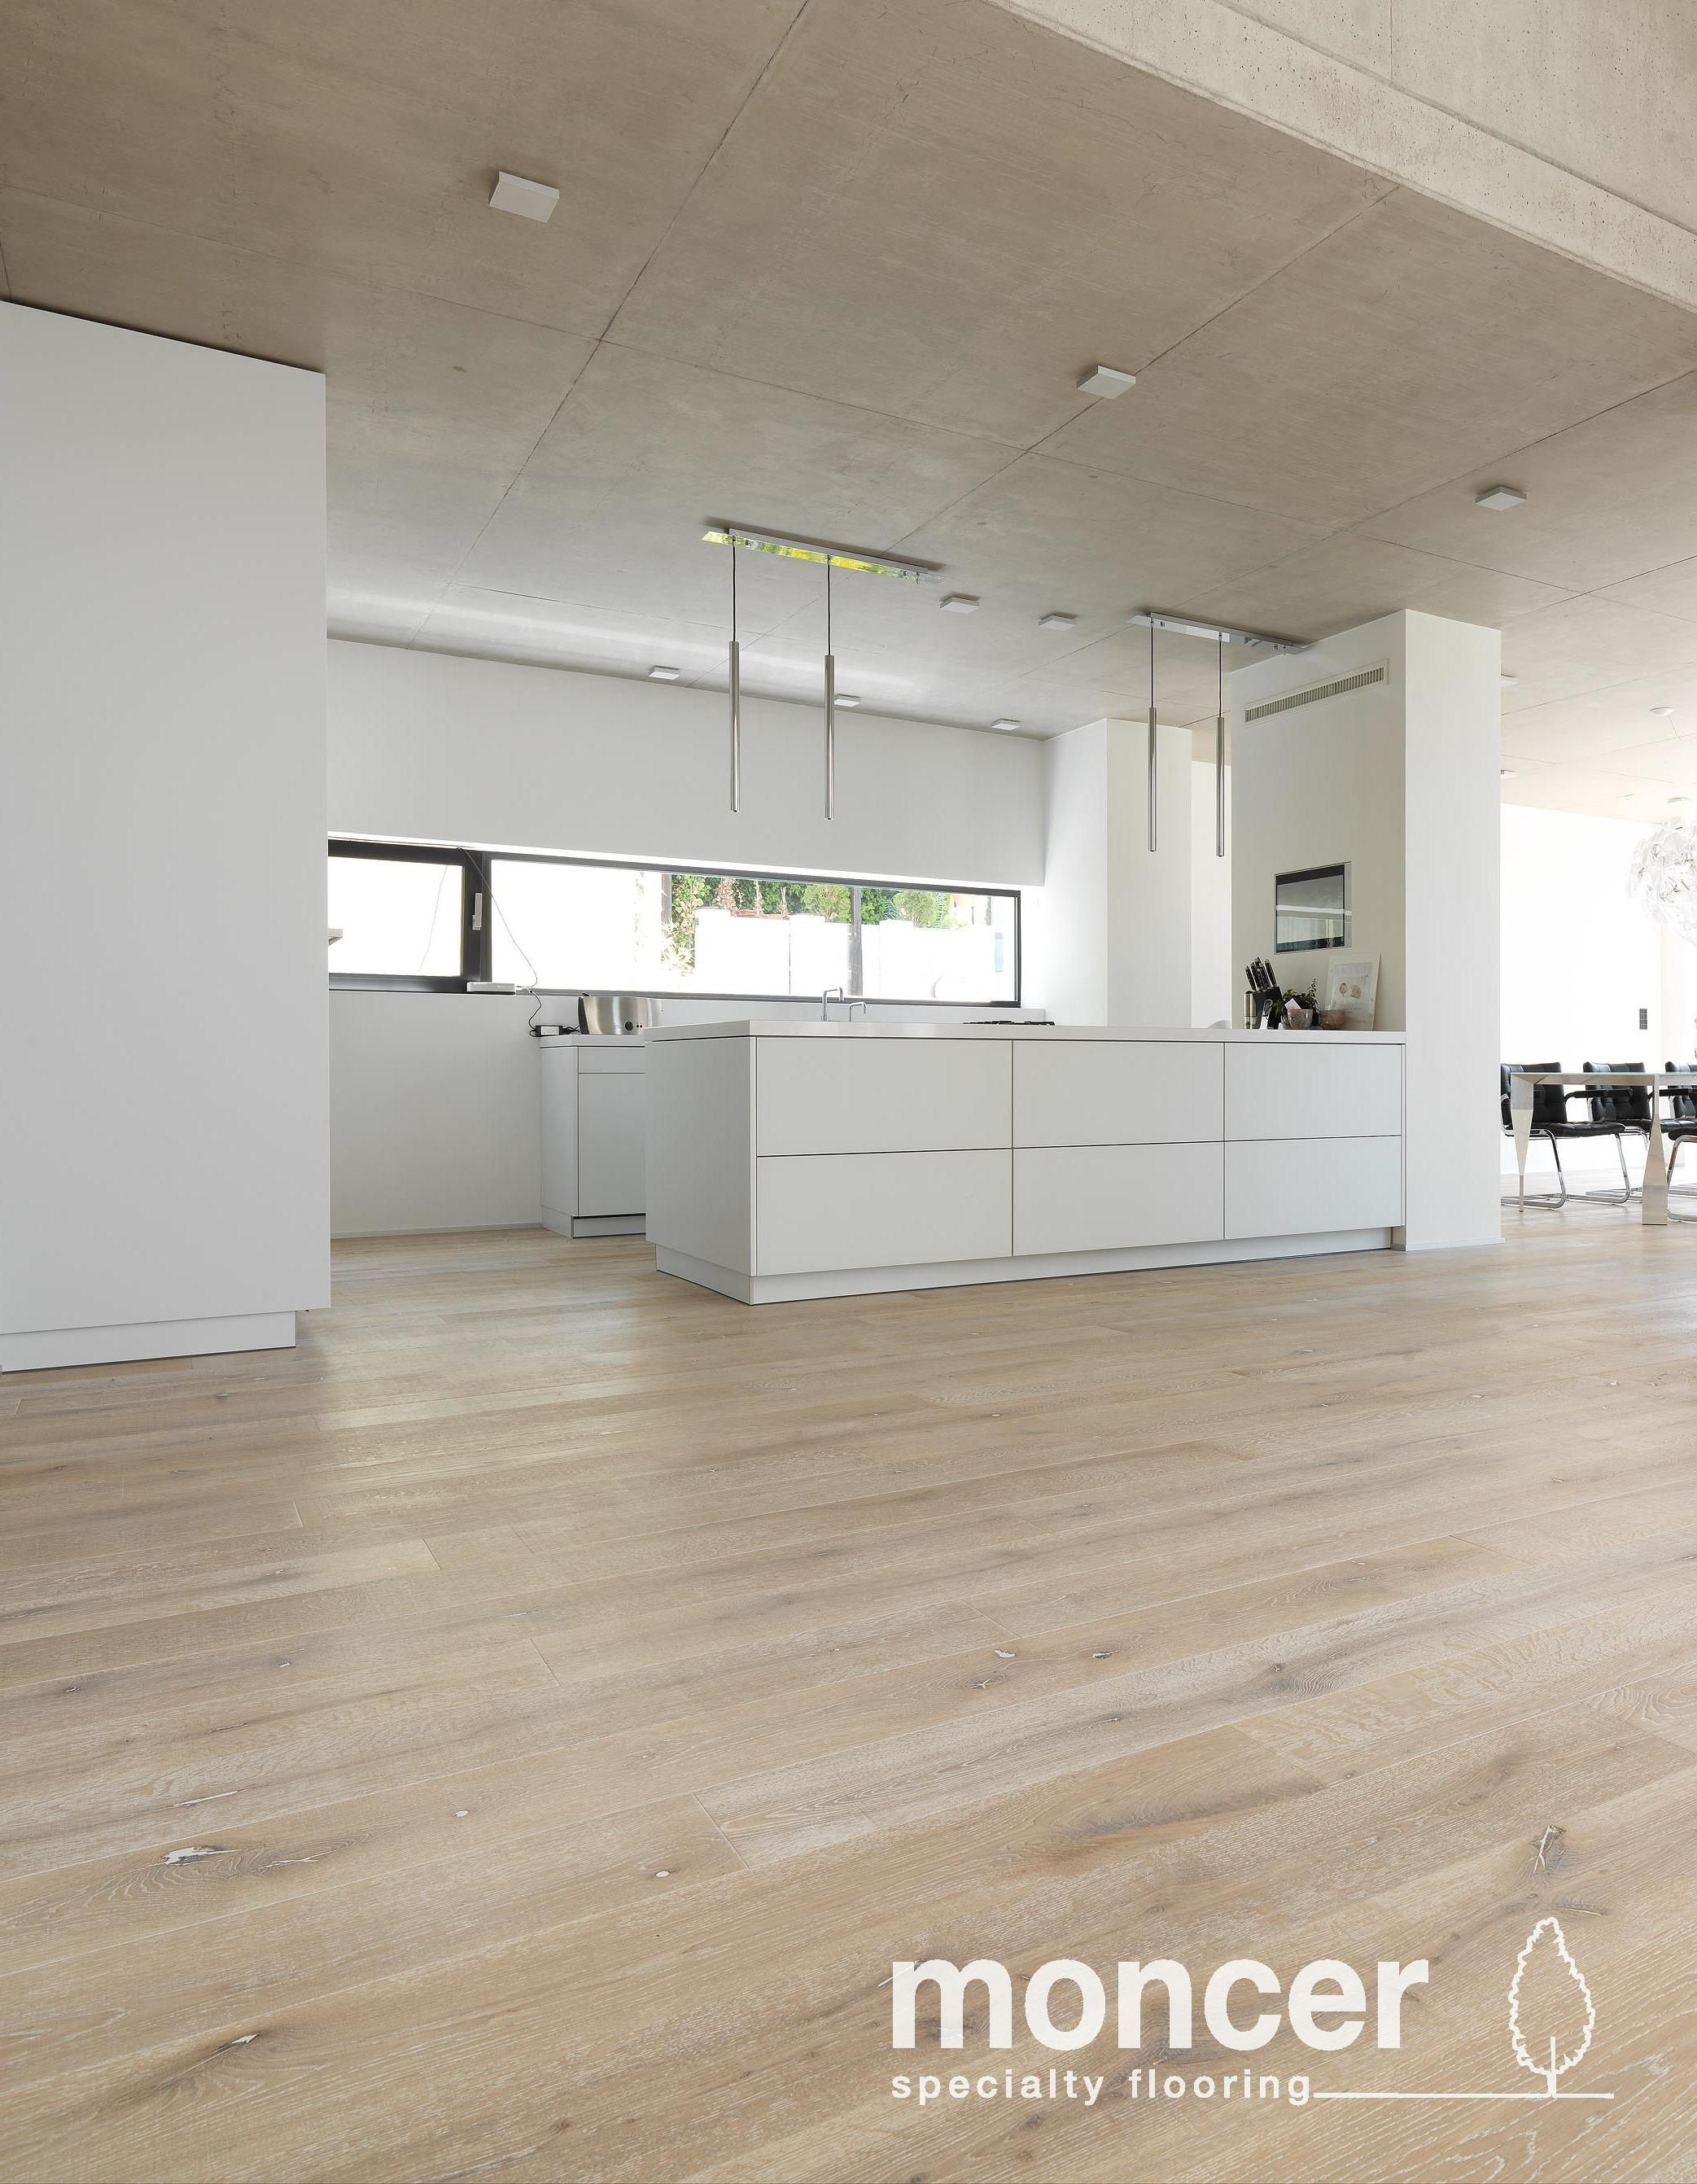 custom hardwood flooring toronto of moncer flooring moncerflooring on pinterest in 0e530da67bcbfe14f60b1e8e7acb838e